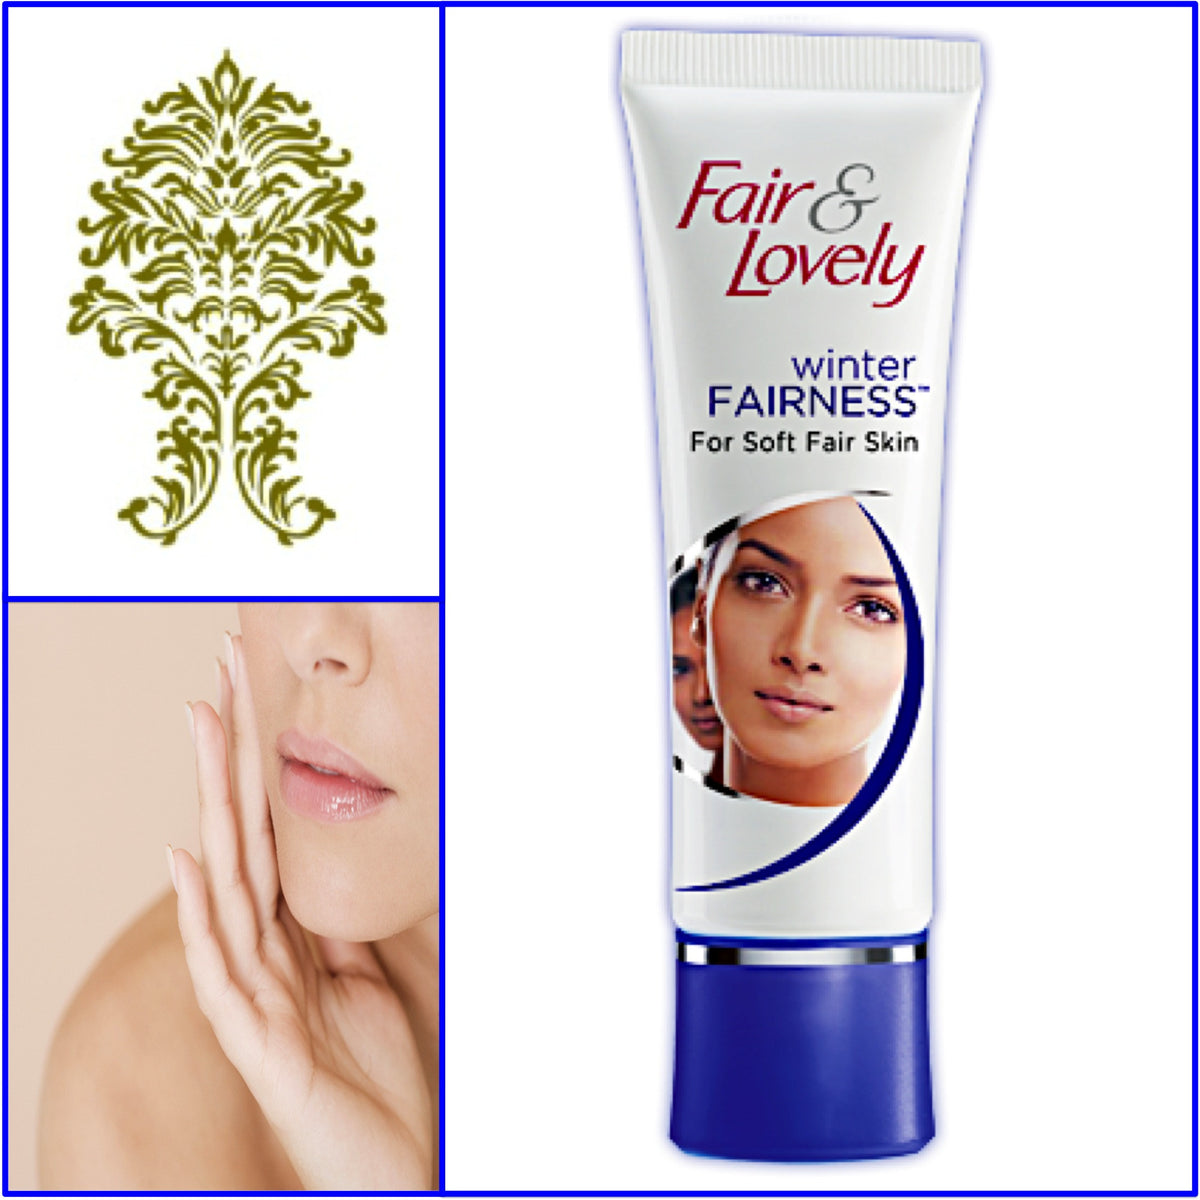 Fair & Lovely Winter Fairness Cream - Soft Fair Skin 50g